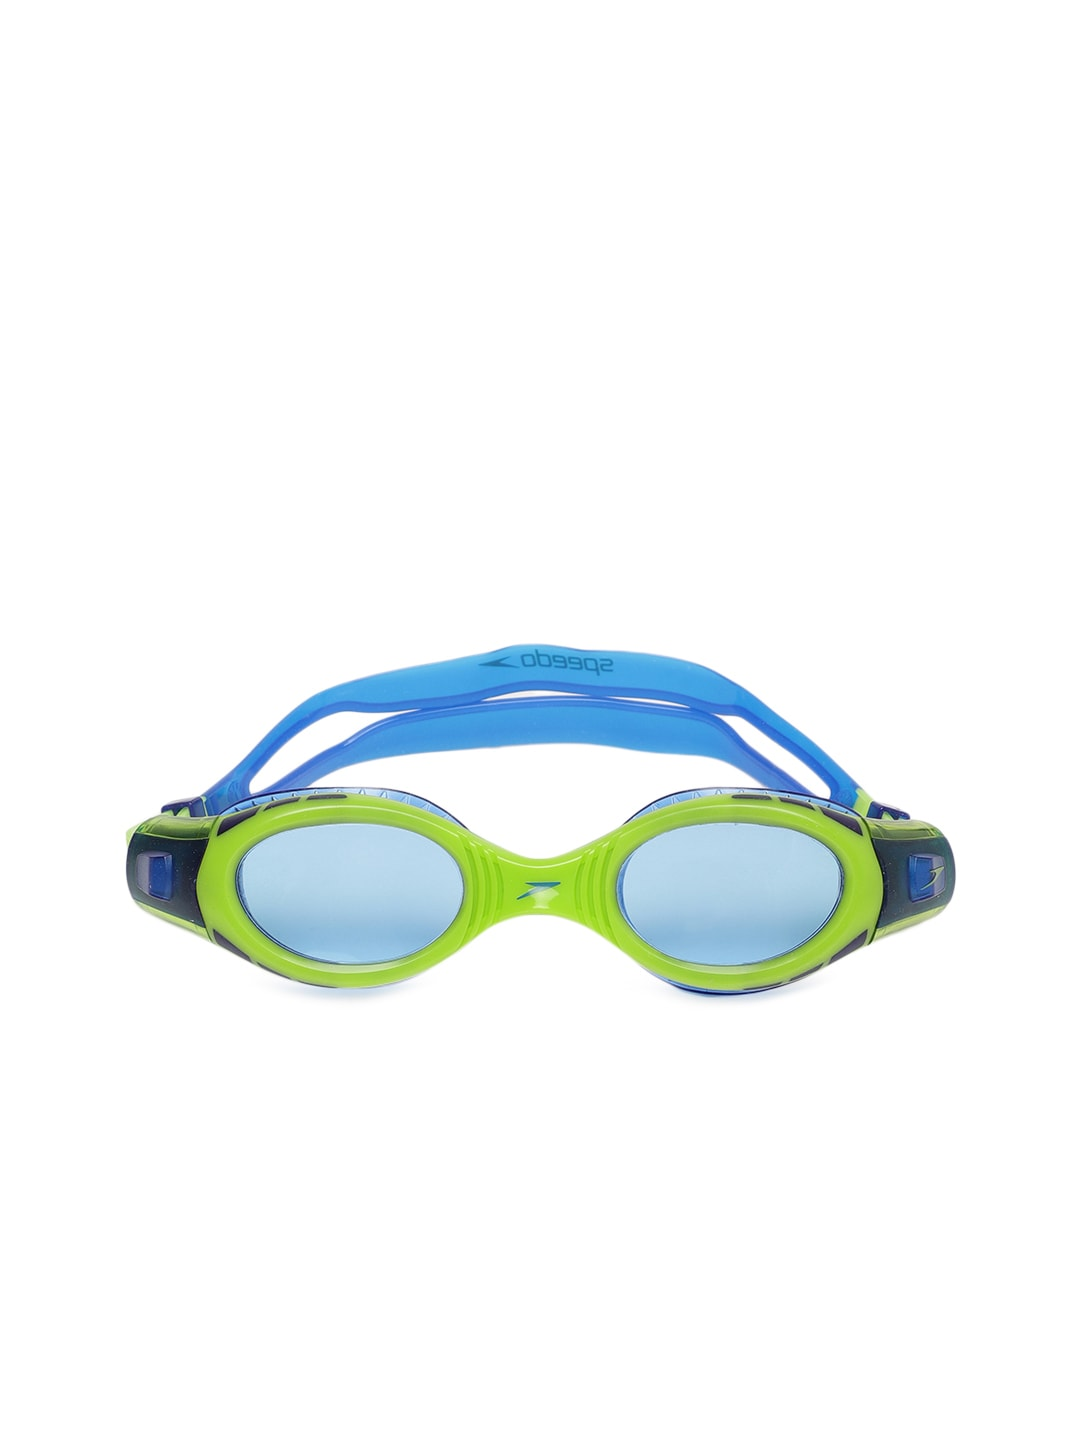 bbf2fbb5acc3 Swimming Goggles Swimwear Briefs Sunglasses - Buy Swimming Goggles Swimwear  Briefs Sunglasses online in India